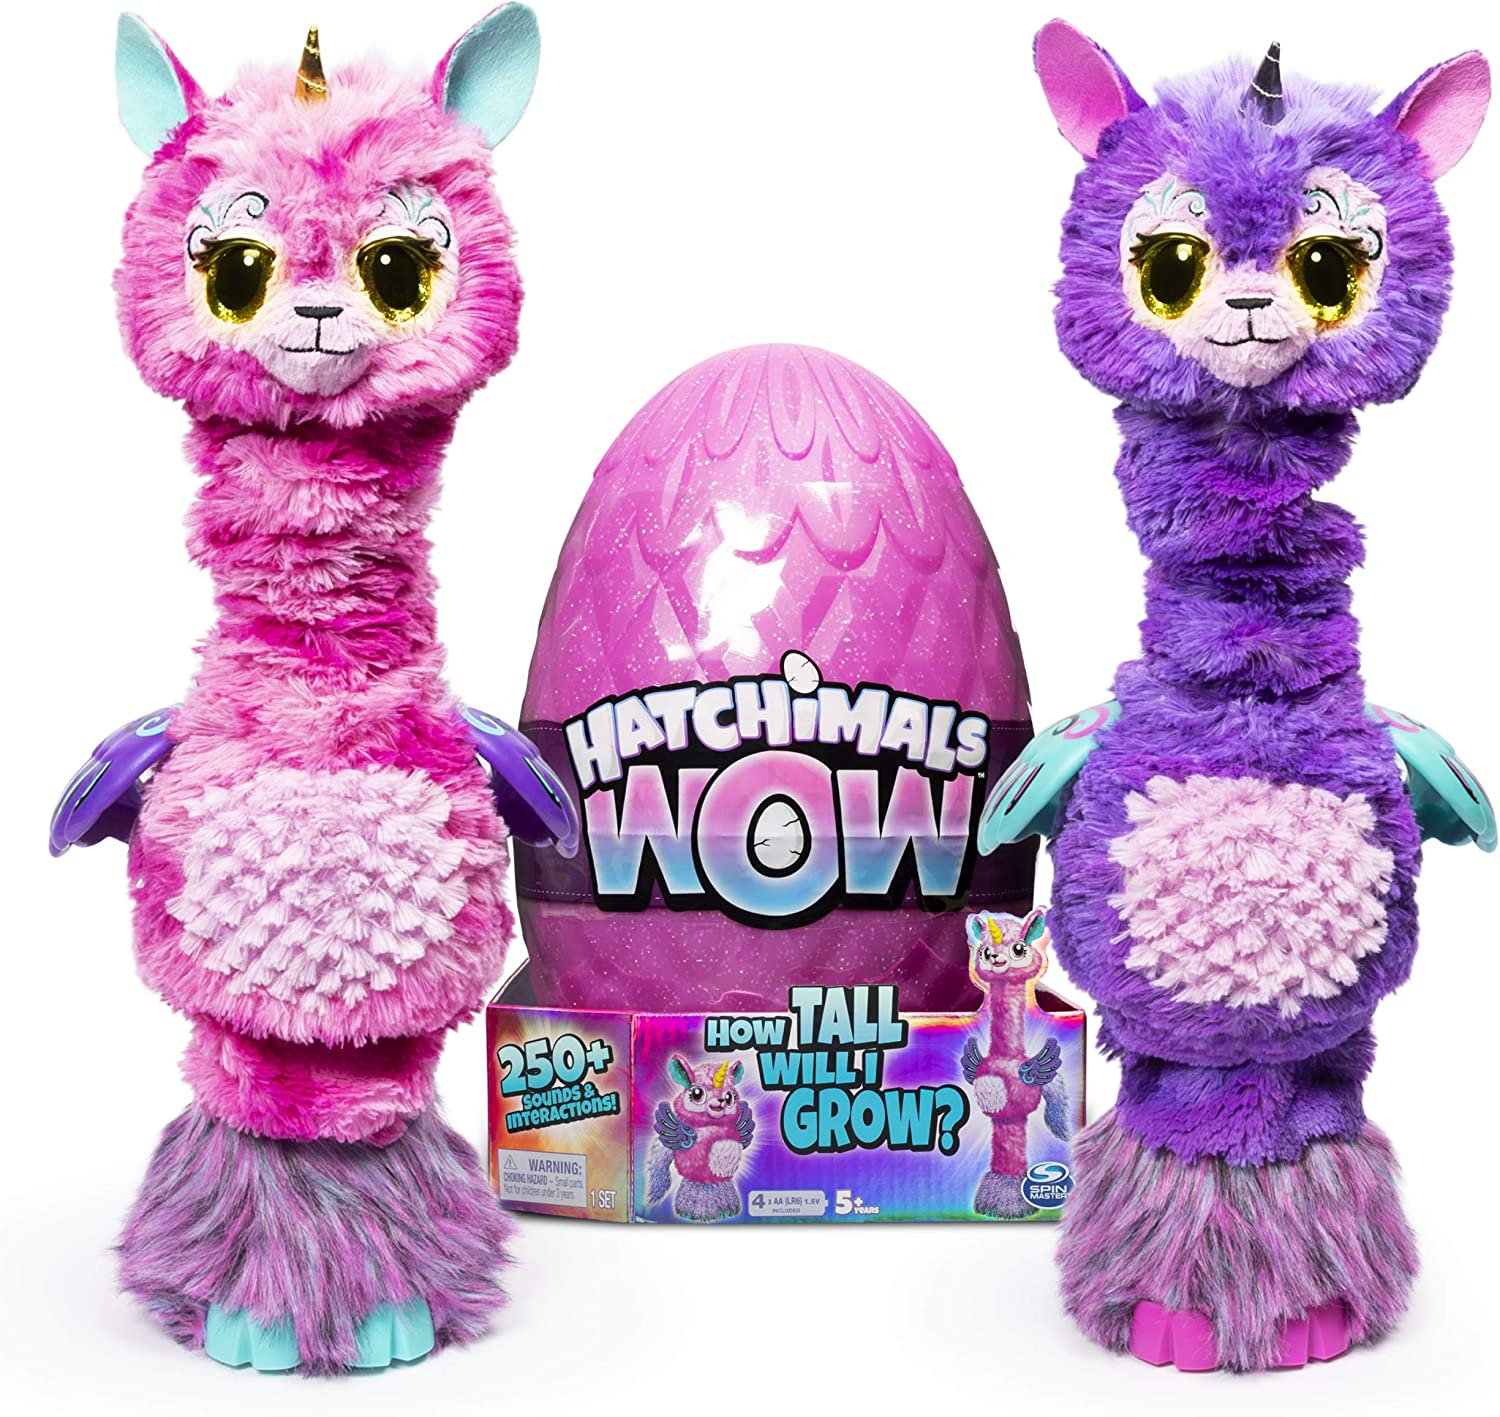 """B07NFRYSZQ Hatchimals Wow Llalacorn 32"""" Tall Interactive with Re-Hatchable Egg (Styles May Vary) 91w1cPCPWHL"""